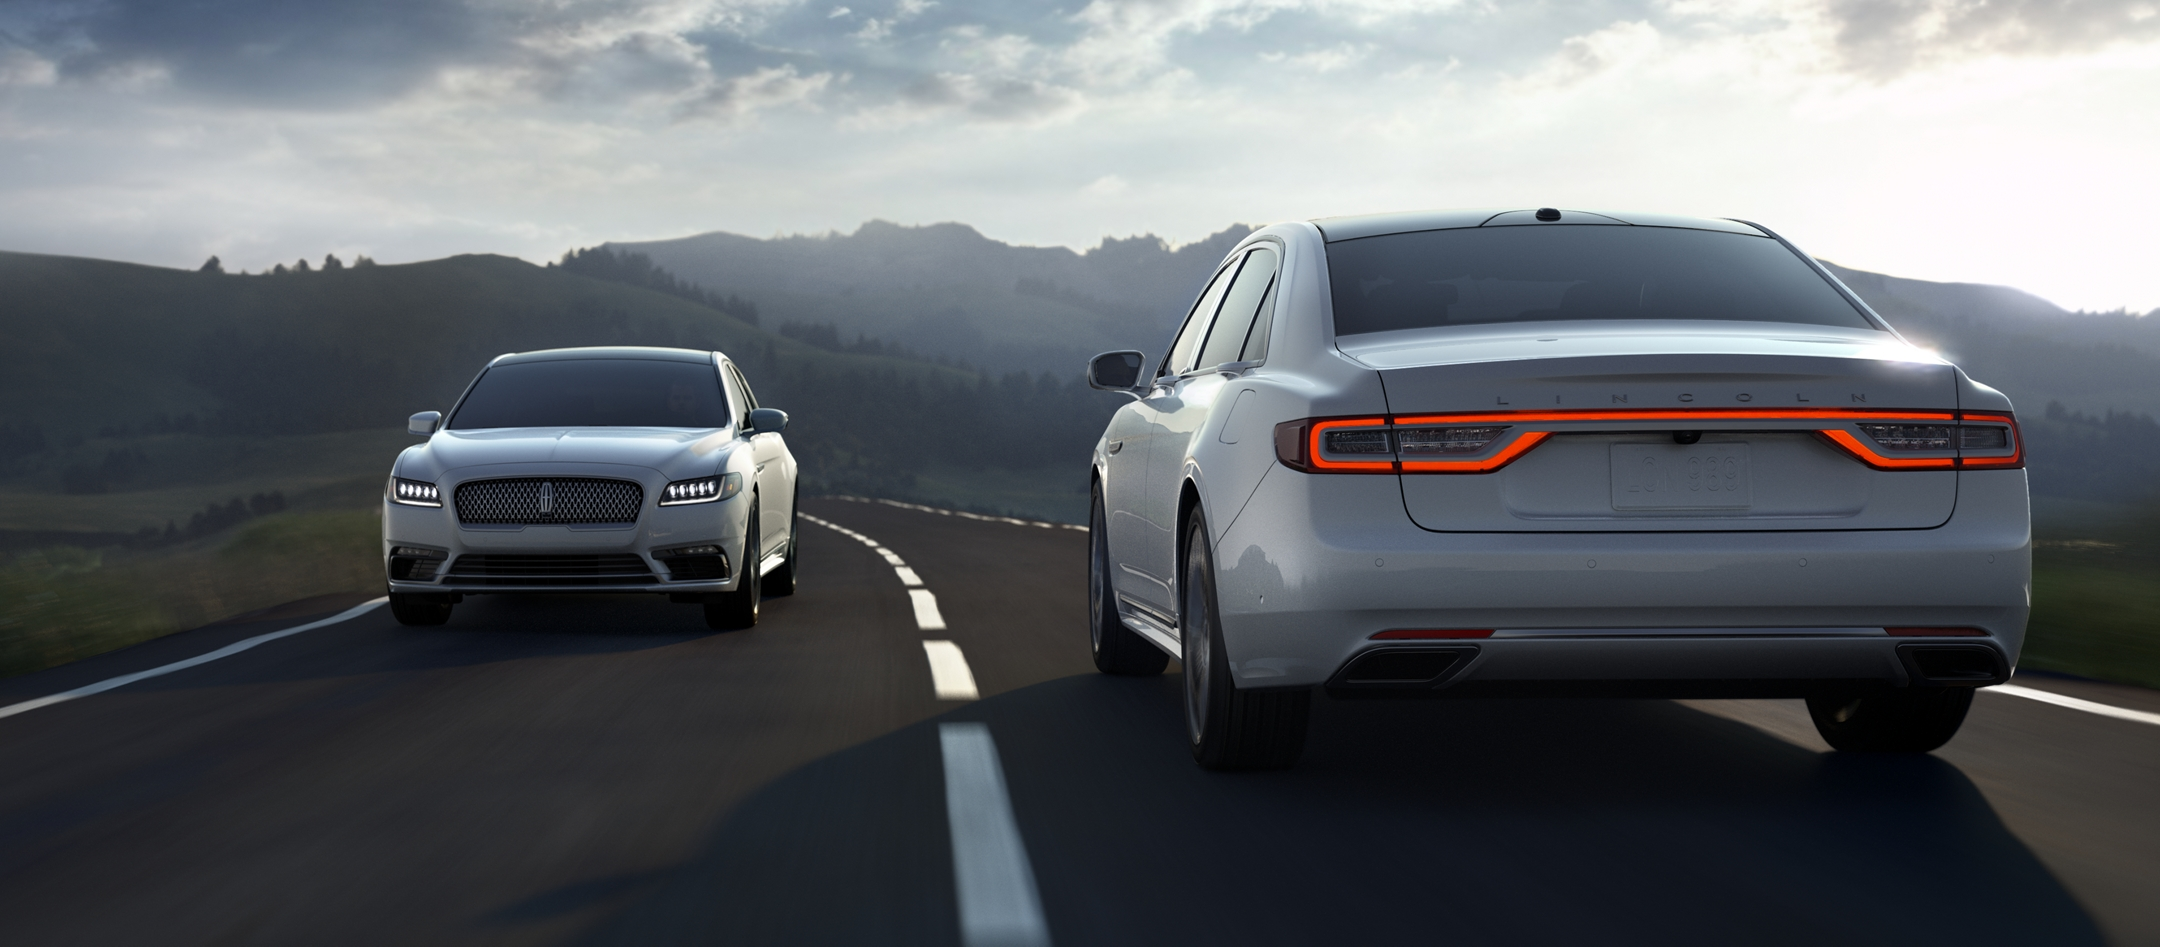 A Lincoln Continental is being driven past another vehicle demonstrate the Lane Keeping System